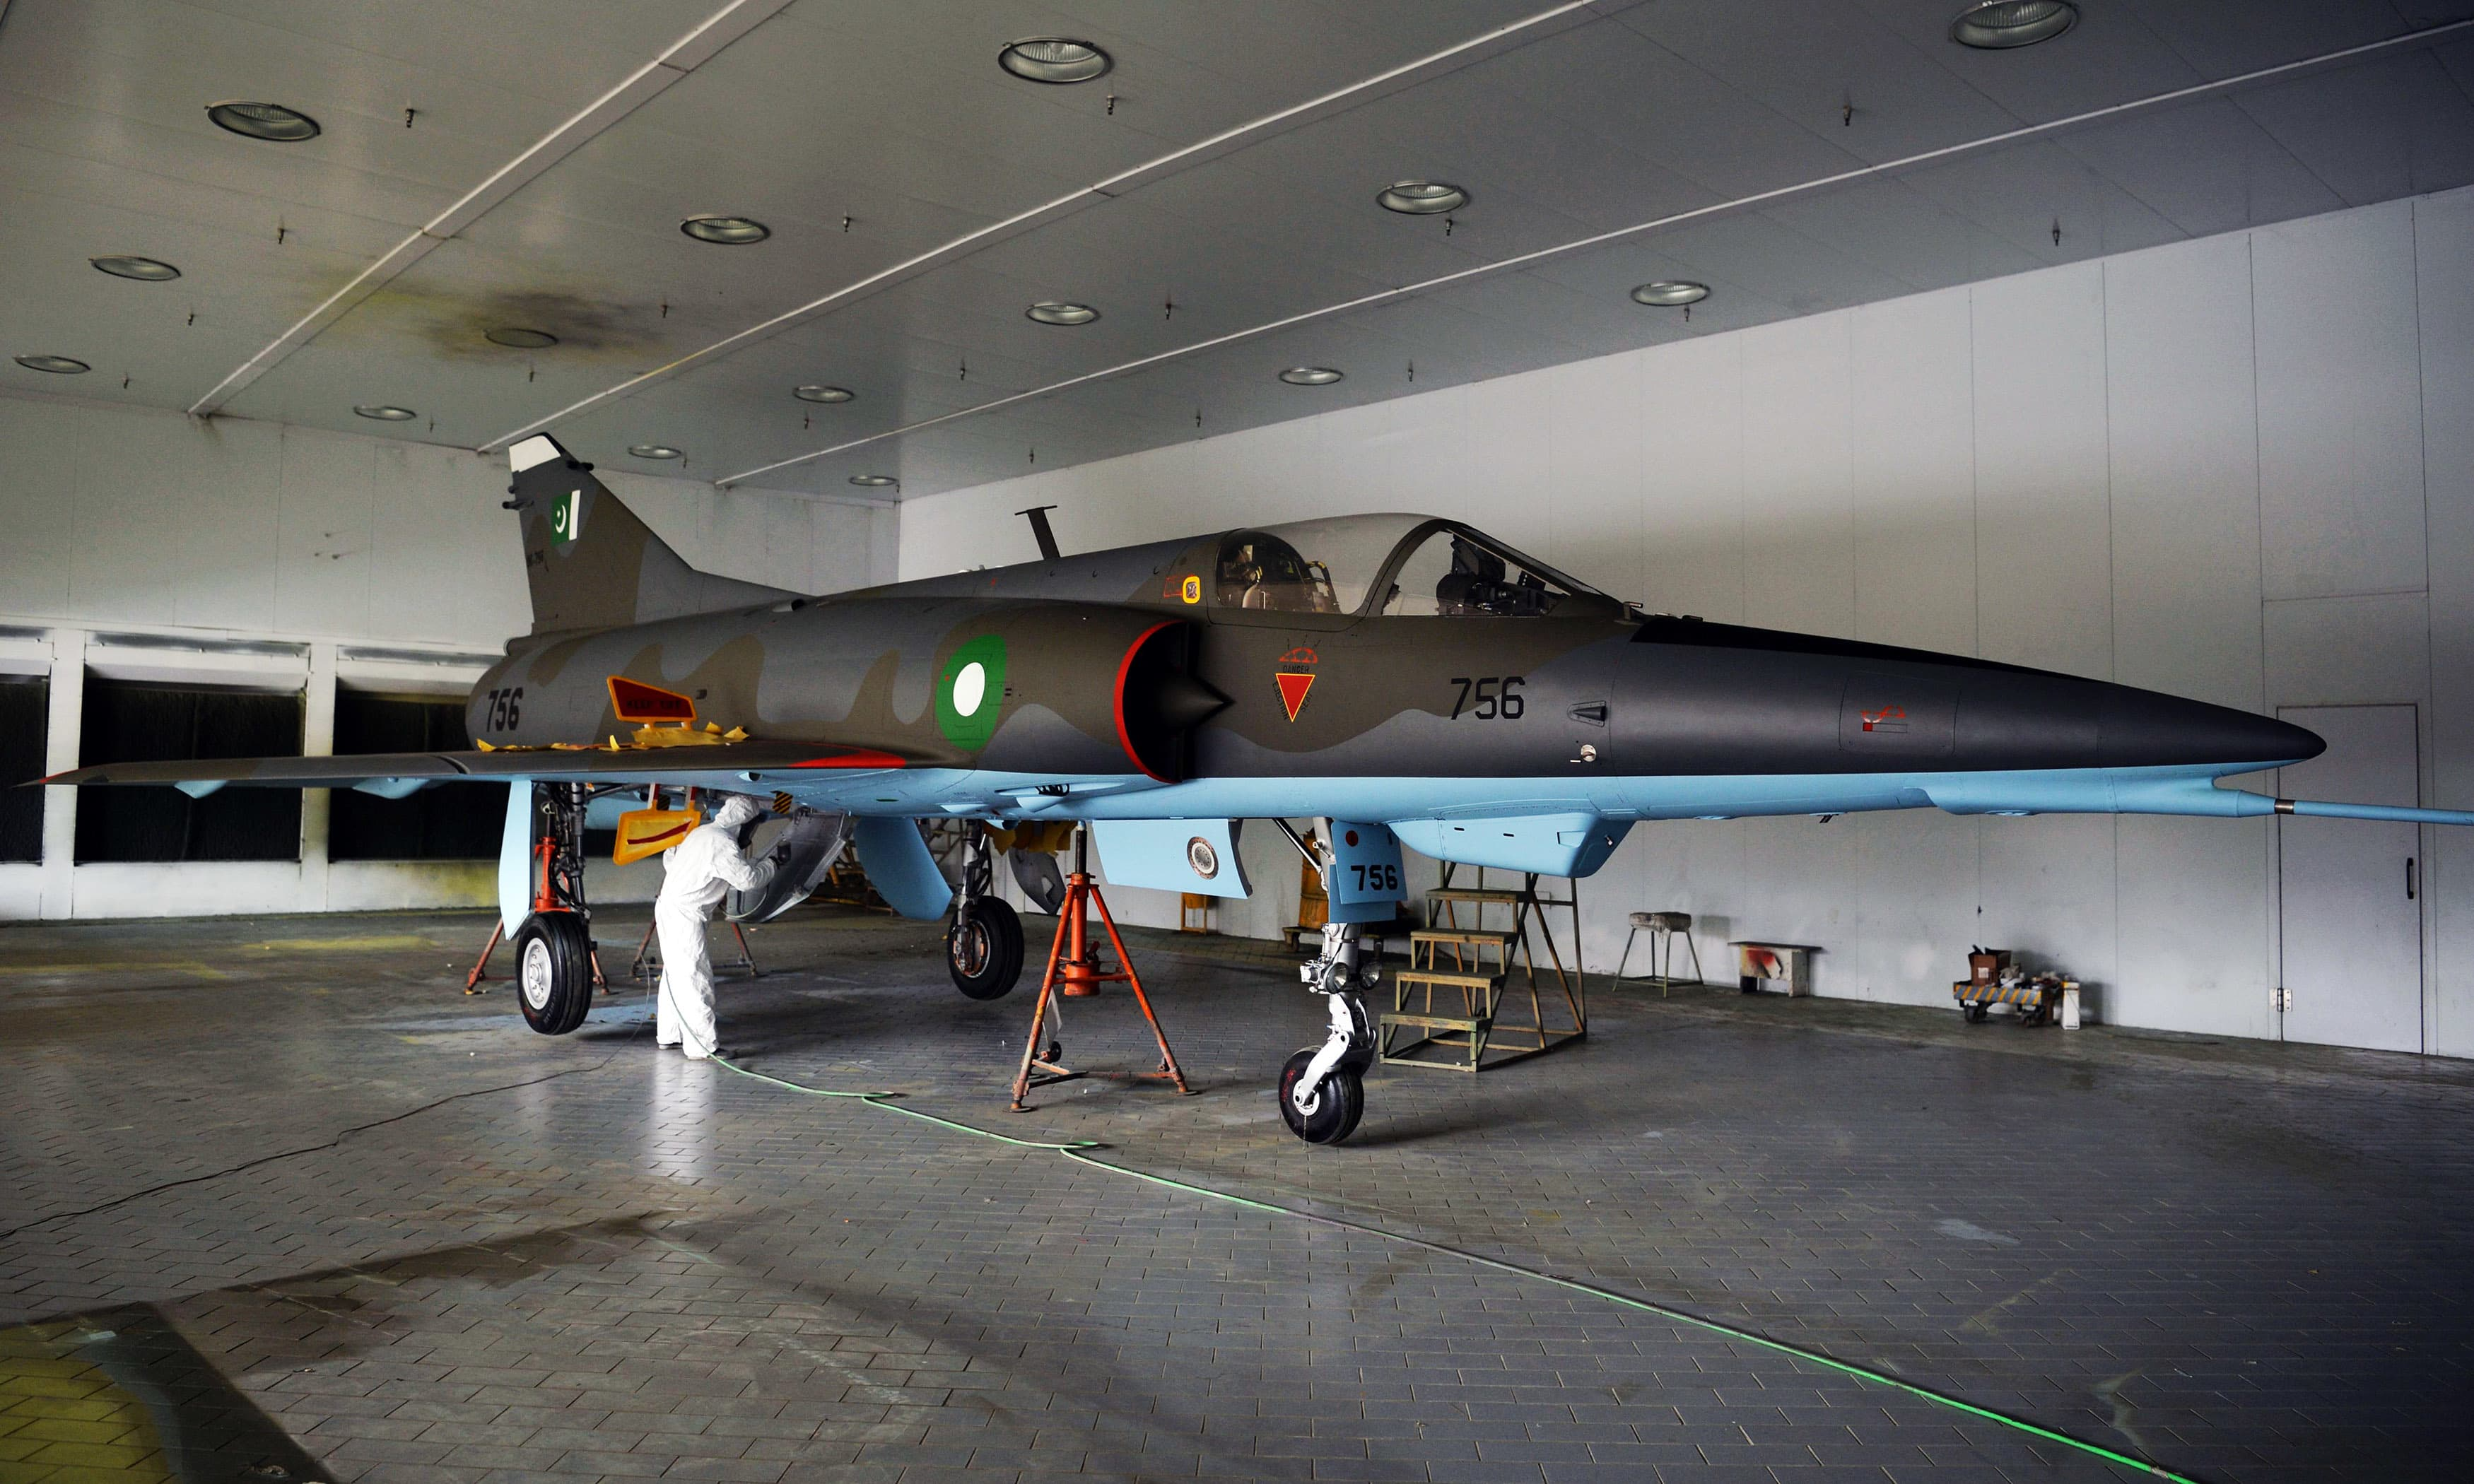 Technicians paint a Mirage aircraft after being serviced by at the Mirage Rebuild Factory in Kamra. —AFP